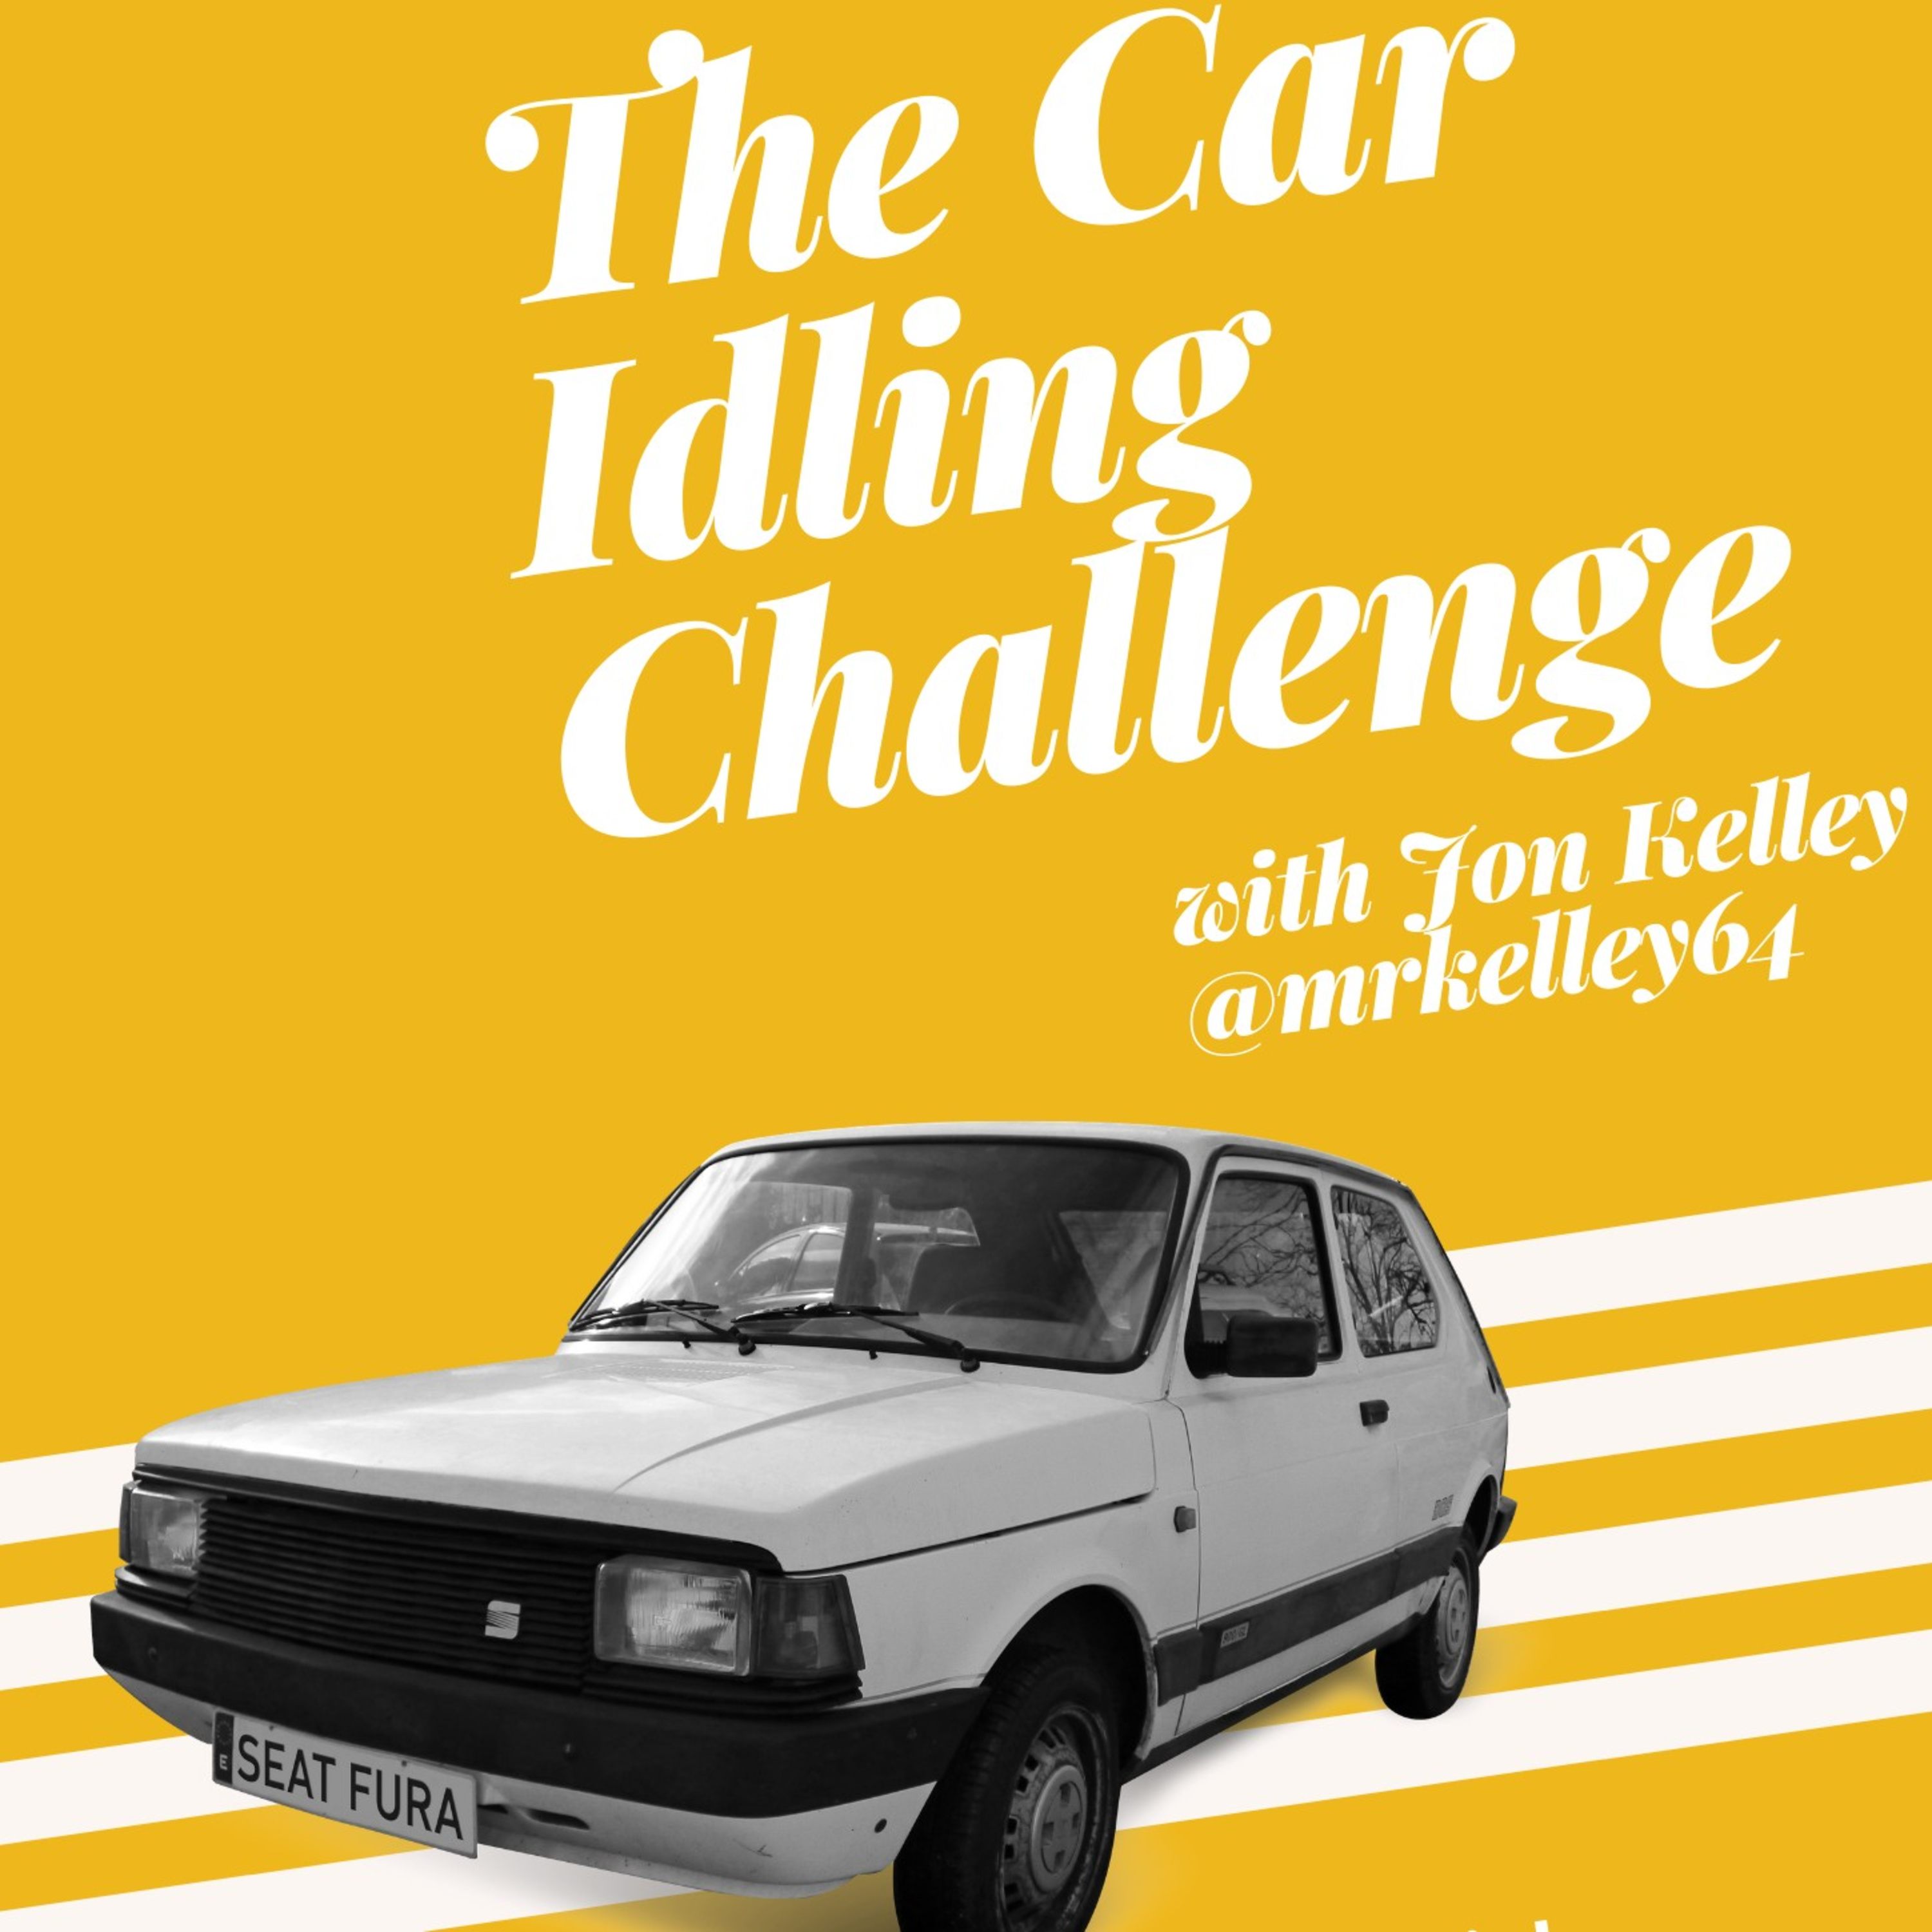 """""""The Car Idling Challenge""""- Rethinking teaching the scientific process through PBL"""